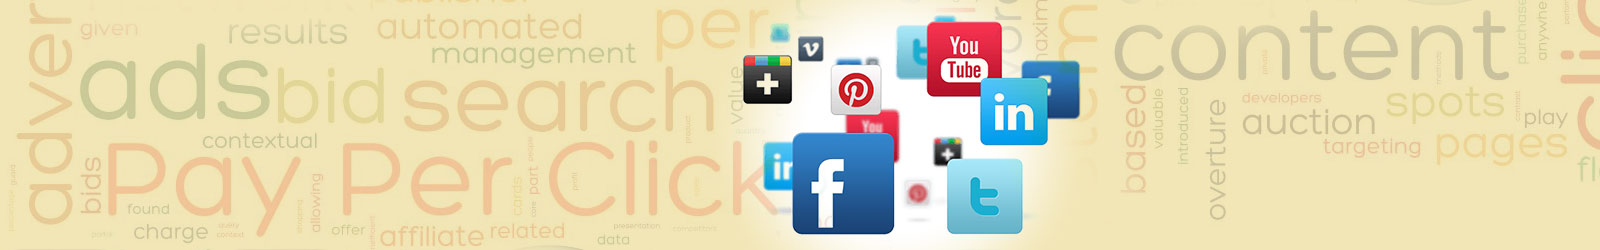 Complete Digital Marketing Services is provided by Yelkotech